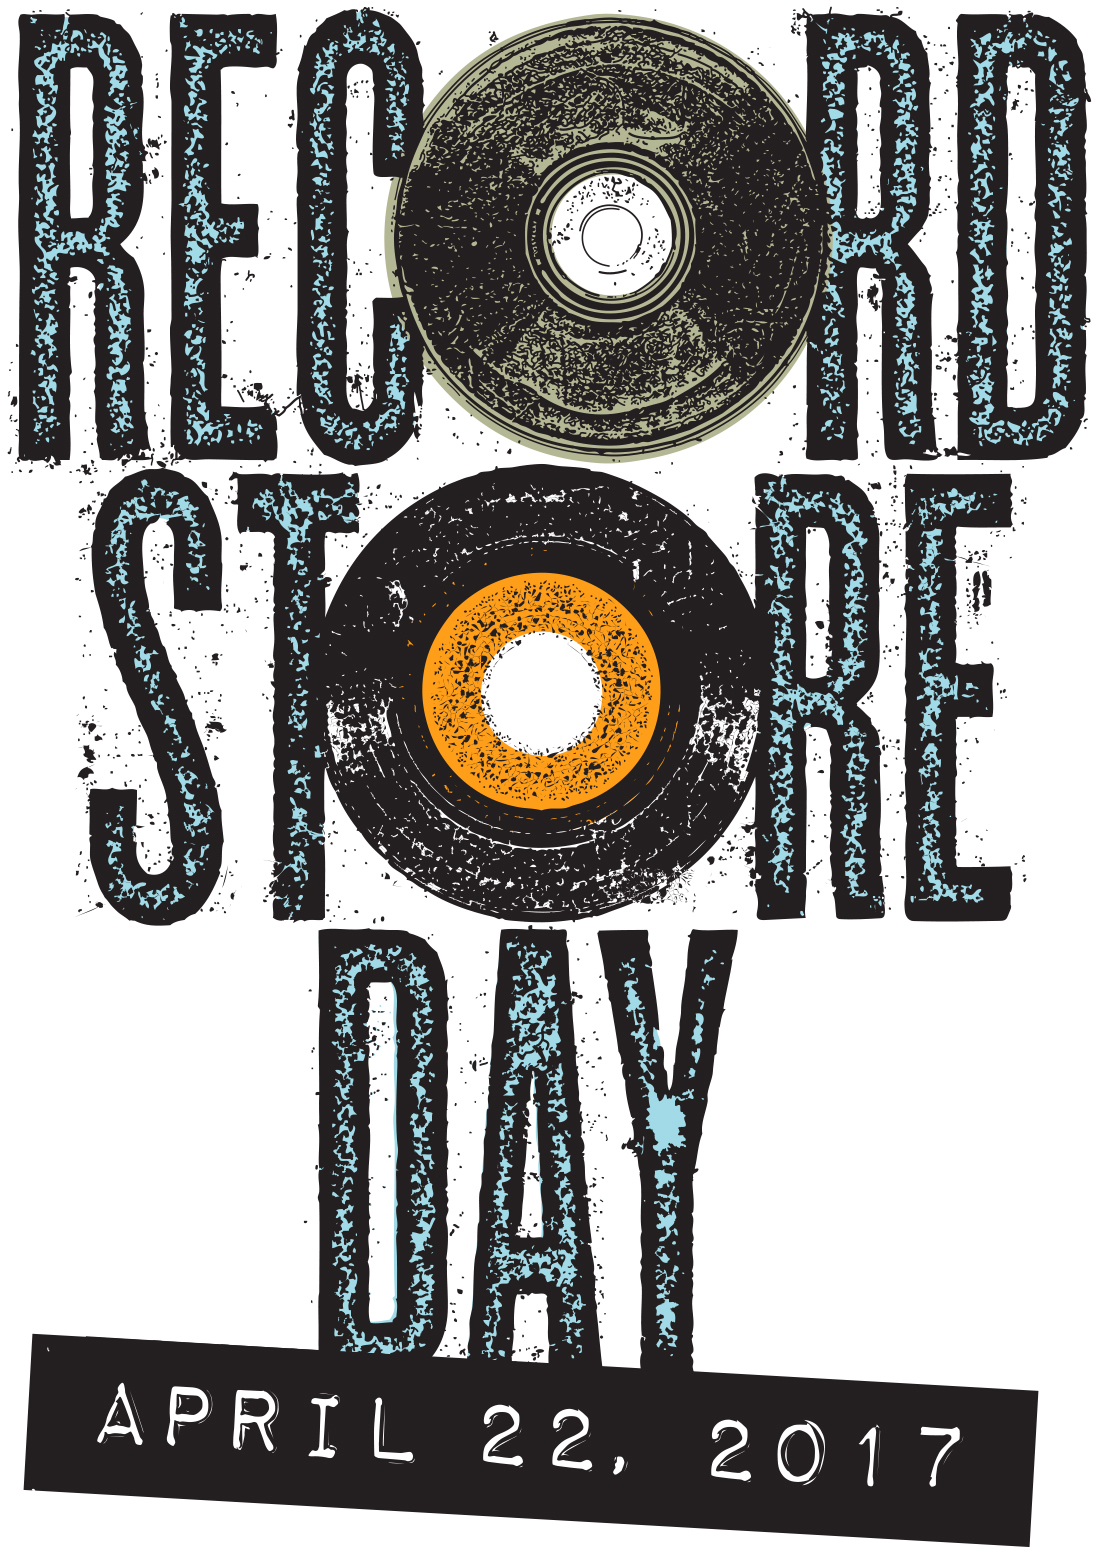 Record Store Day - The Organization behind the magic day.